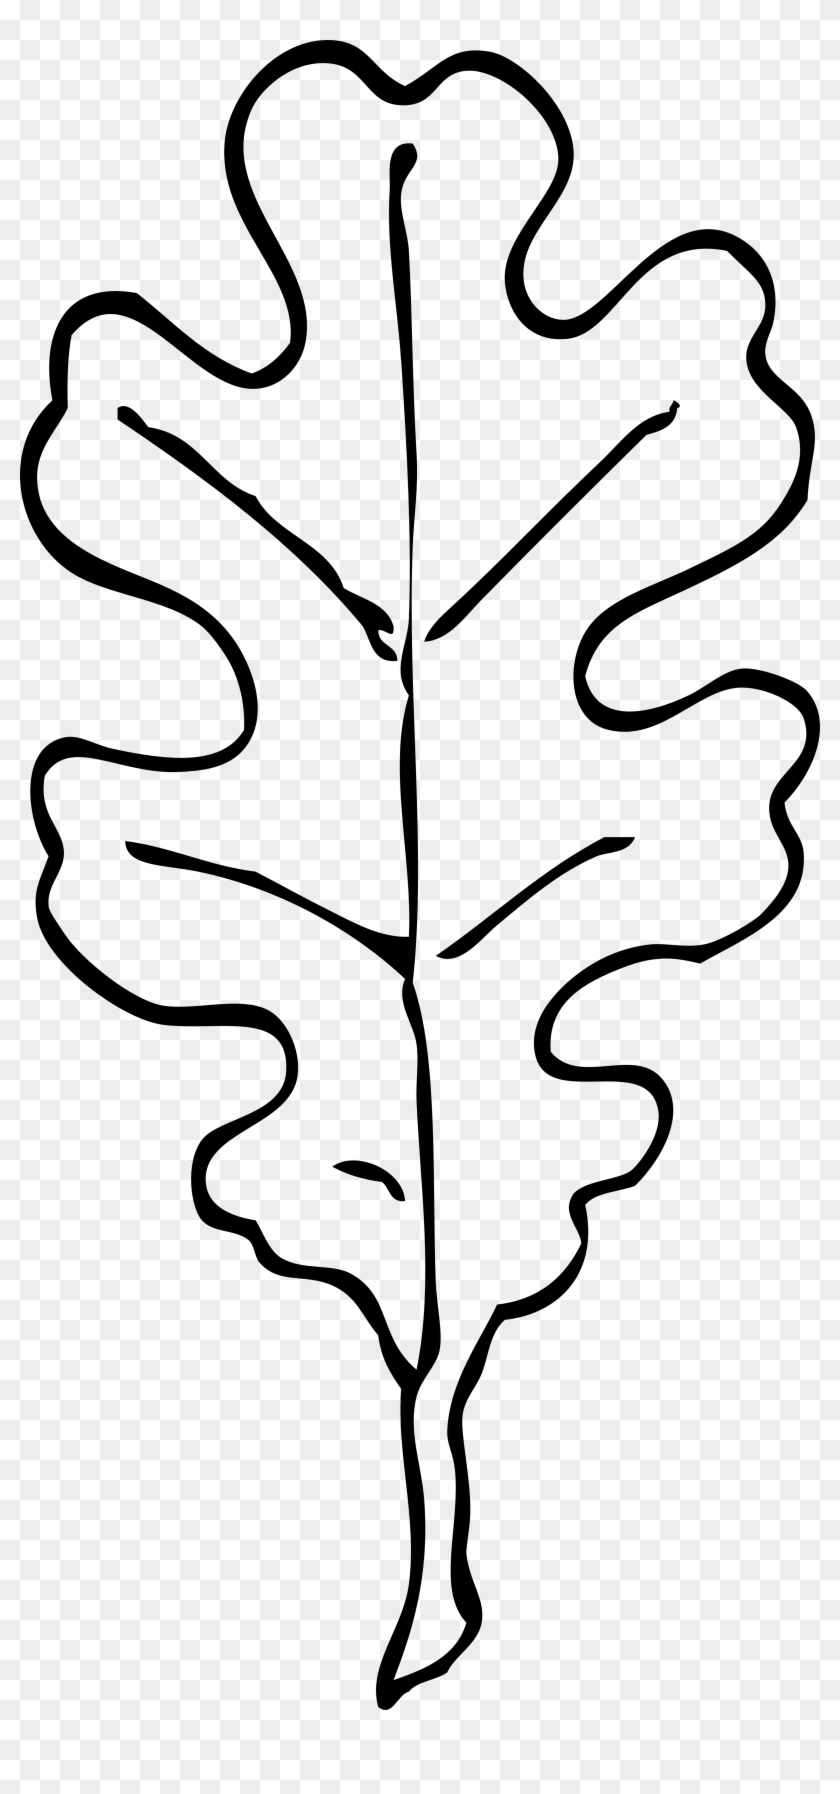 Black And White Leaf Clip Art - Black And White Leaf Clip Art #347